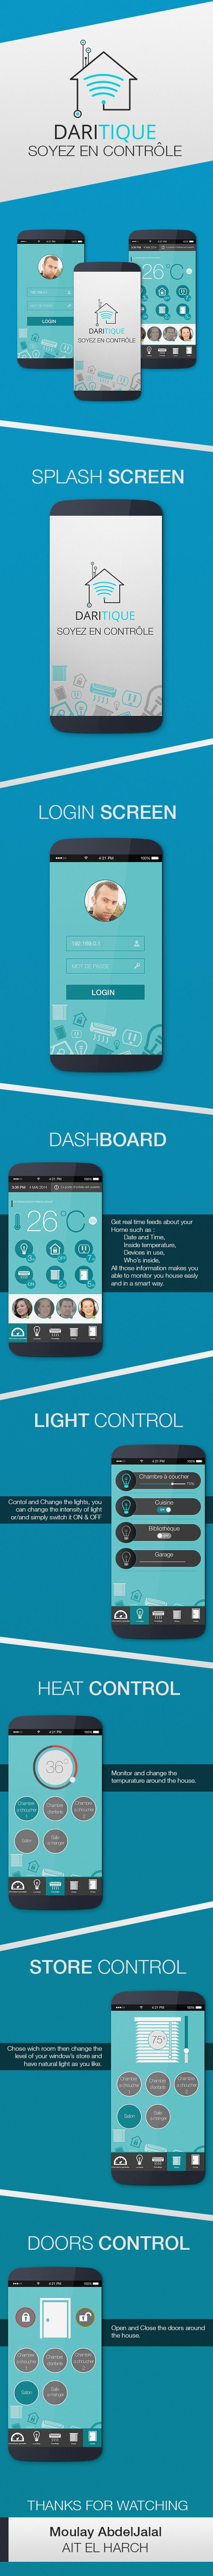 This is the concept design of a smart house controle phone apllication.